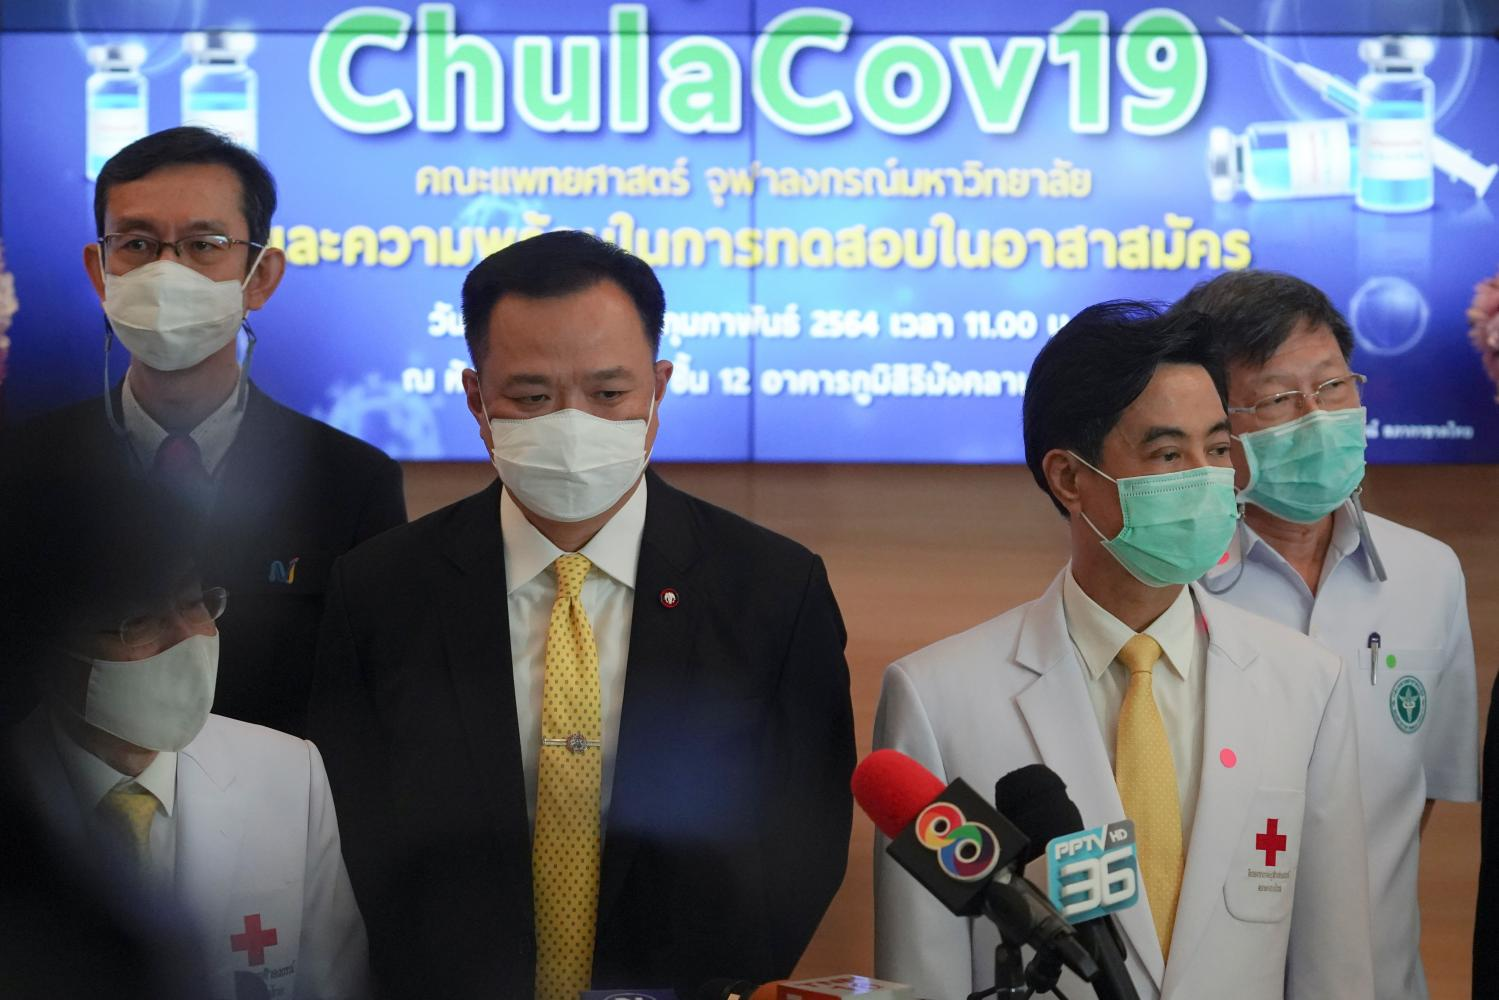 Mr Anutin updates the progress on Thursday of a Covid-19 vaccine being developed by Chulalongkorn University.REUTERS